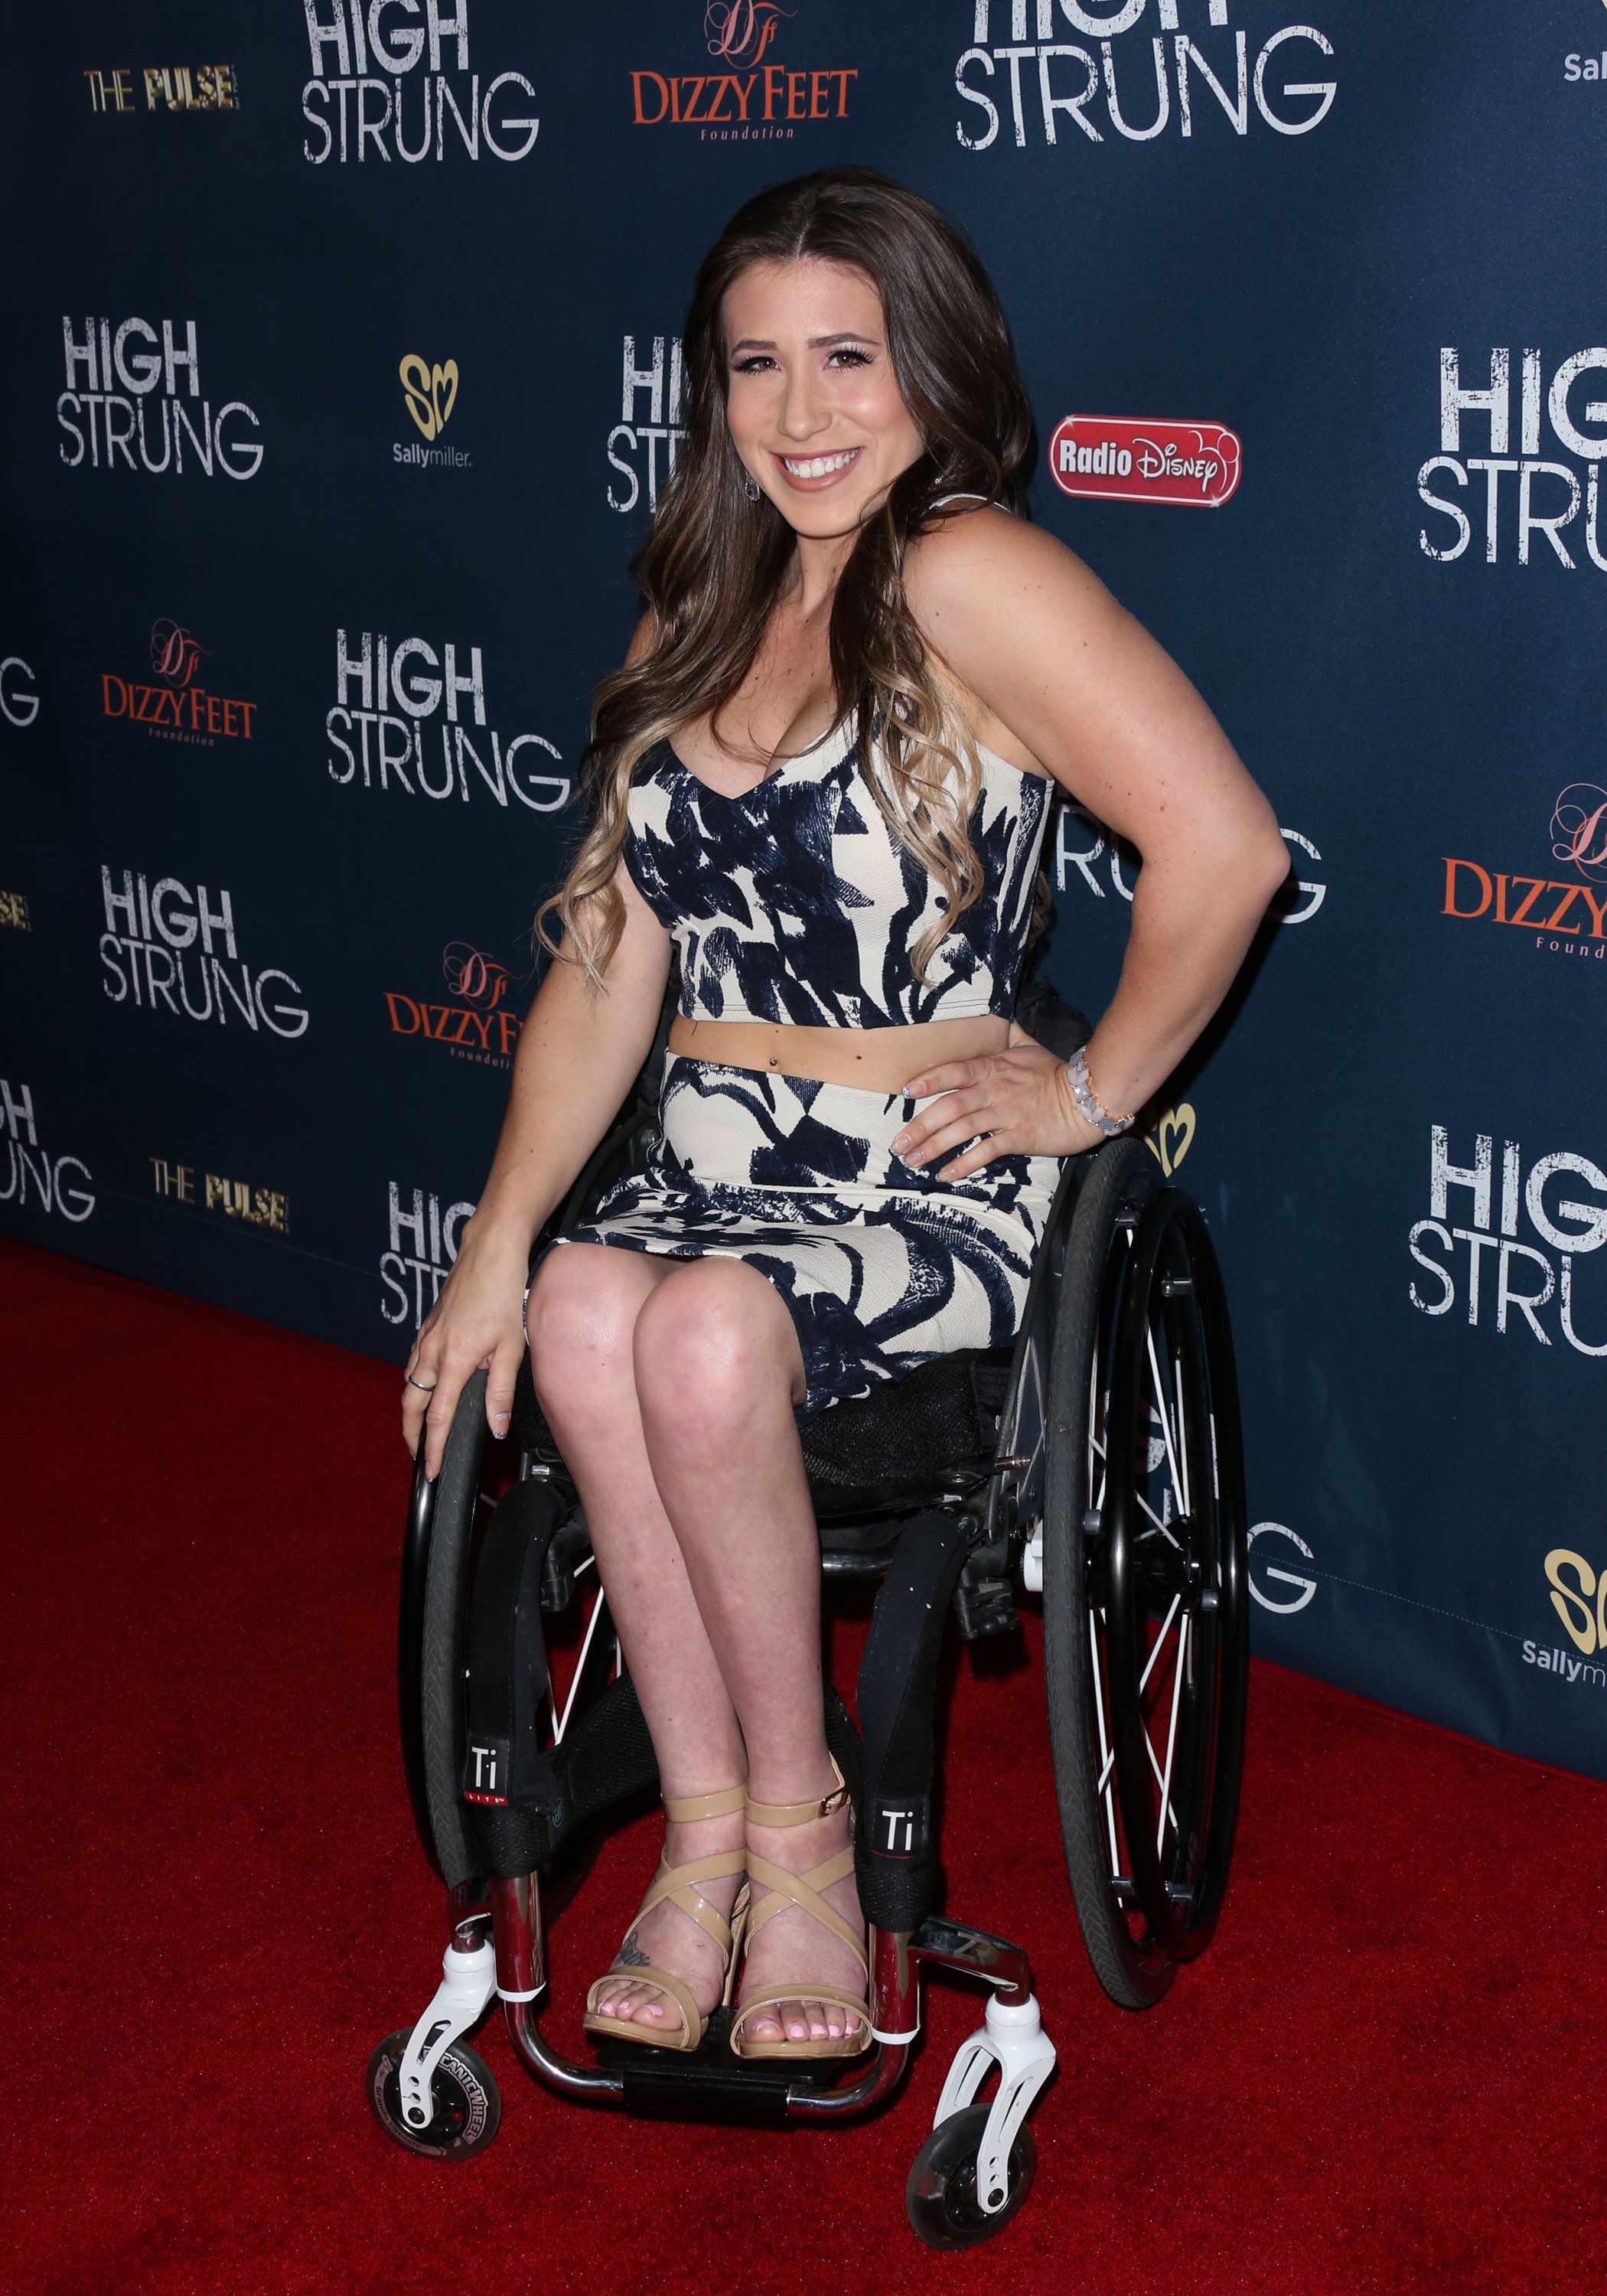 Reality TV Personality Chelsie Hill attends the premiere of 'High Strung' at The TCL Chinese Theatre on March 29, 2016 in Hollywood, California.